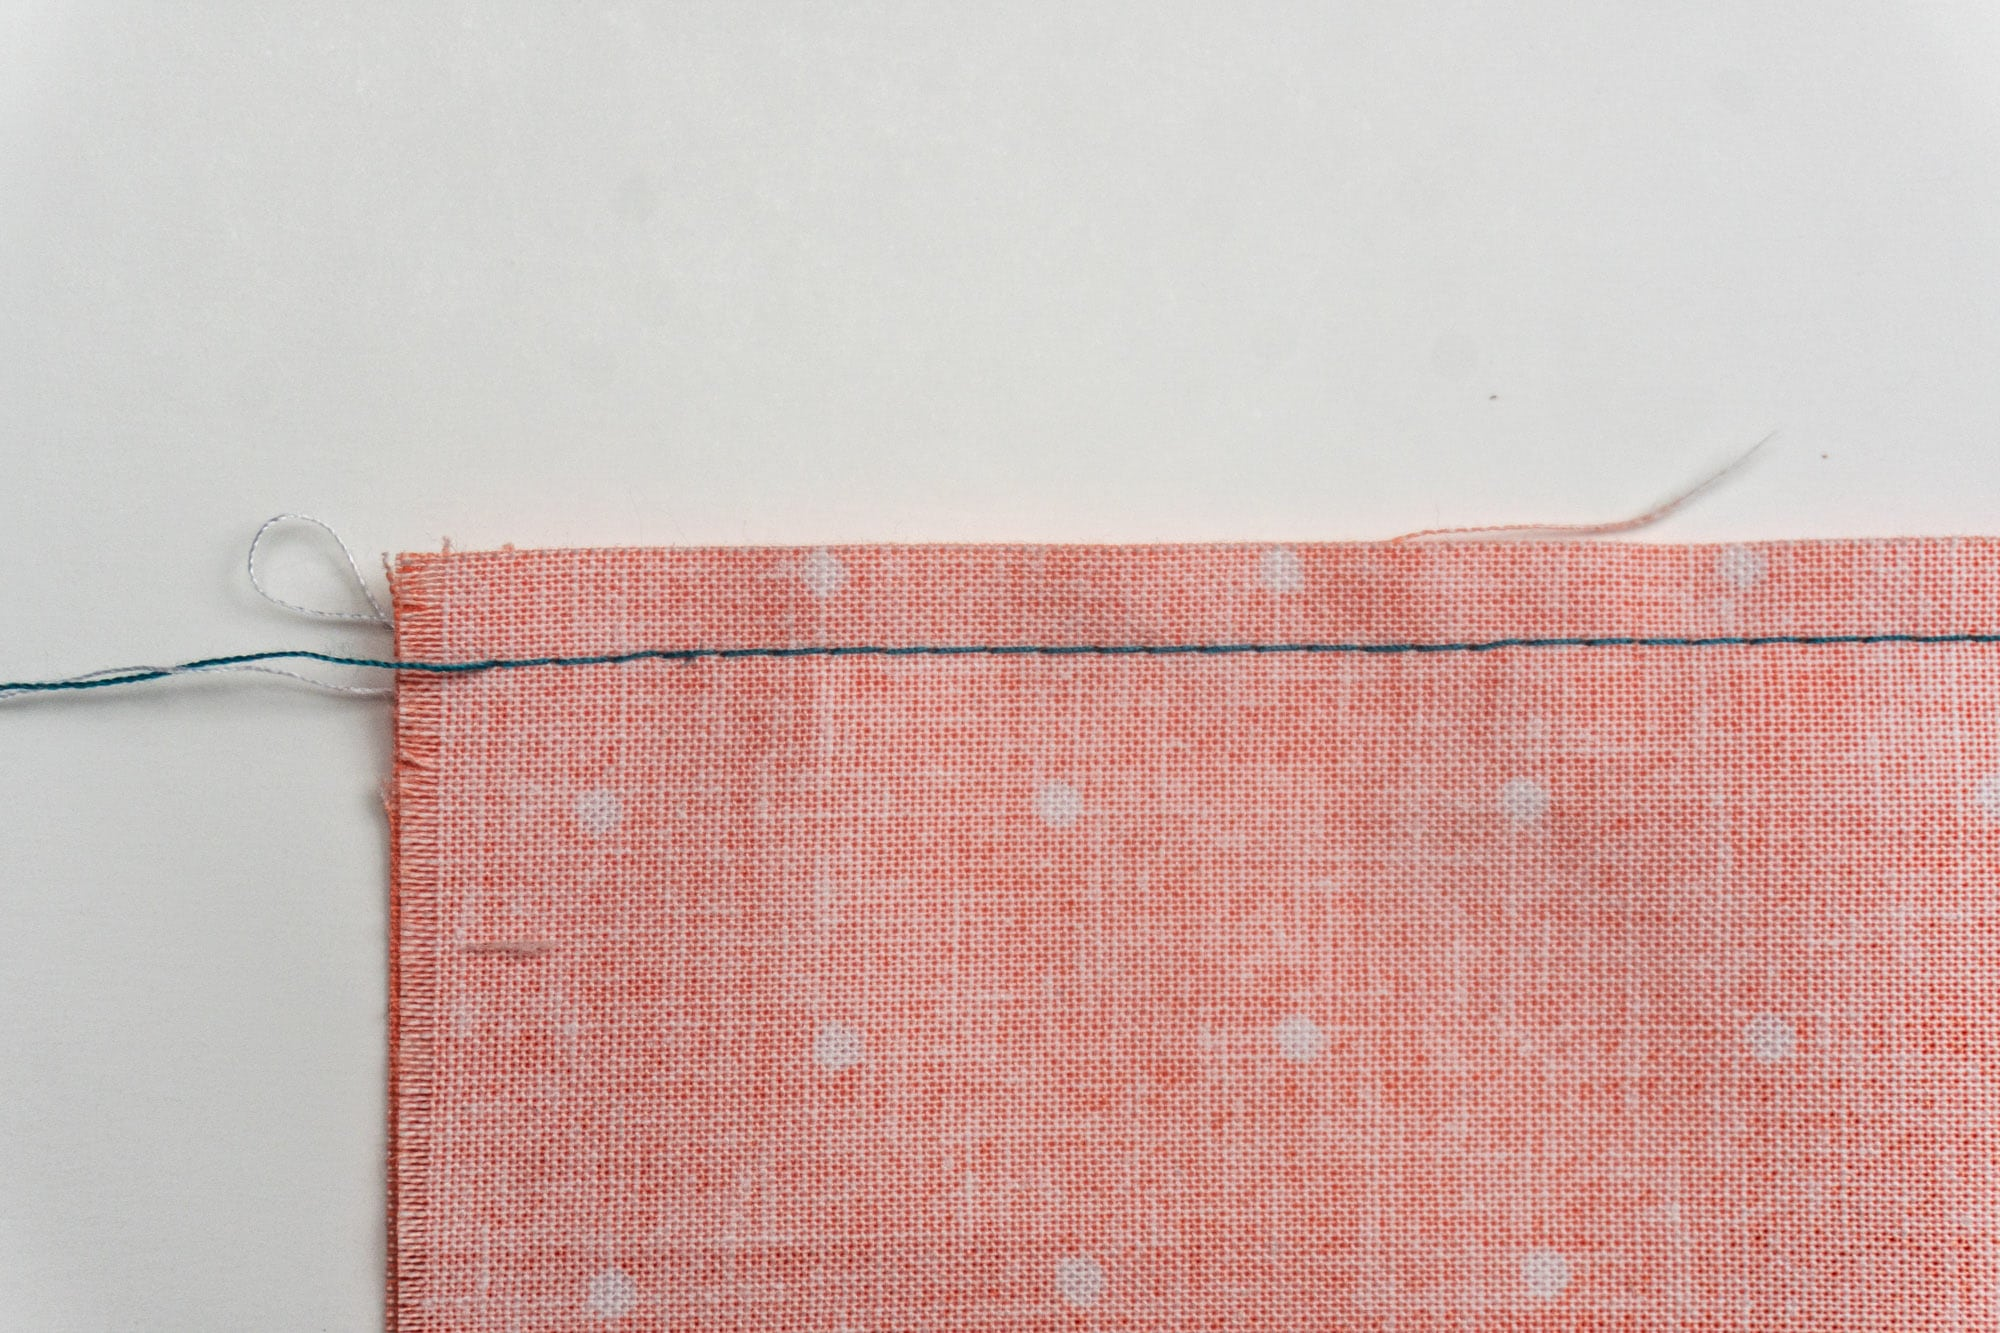 Teal straight stitch on the wrong side of coral fabric.